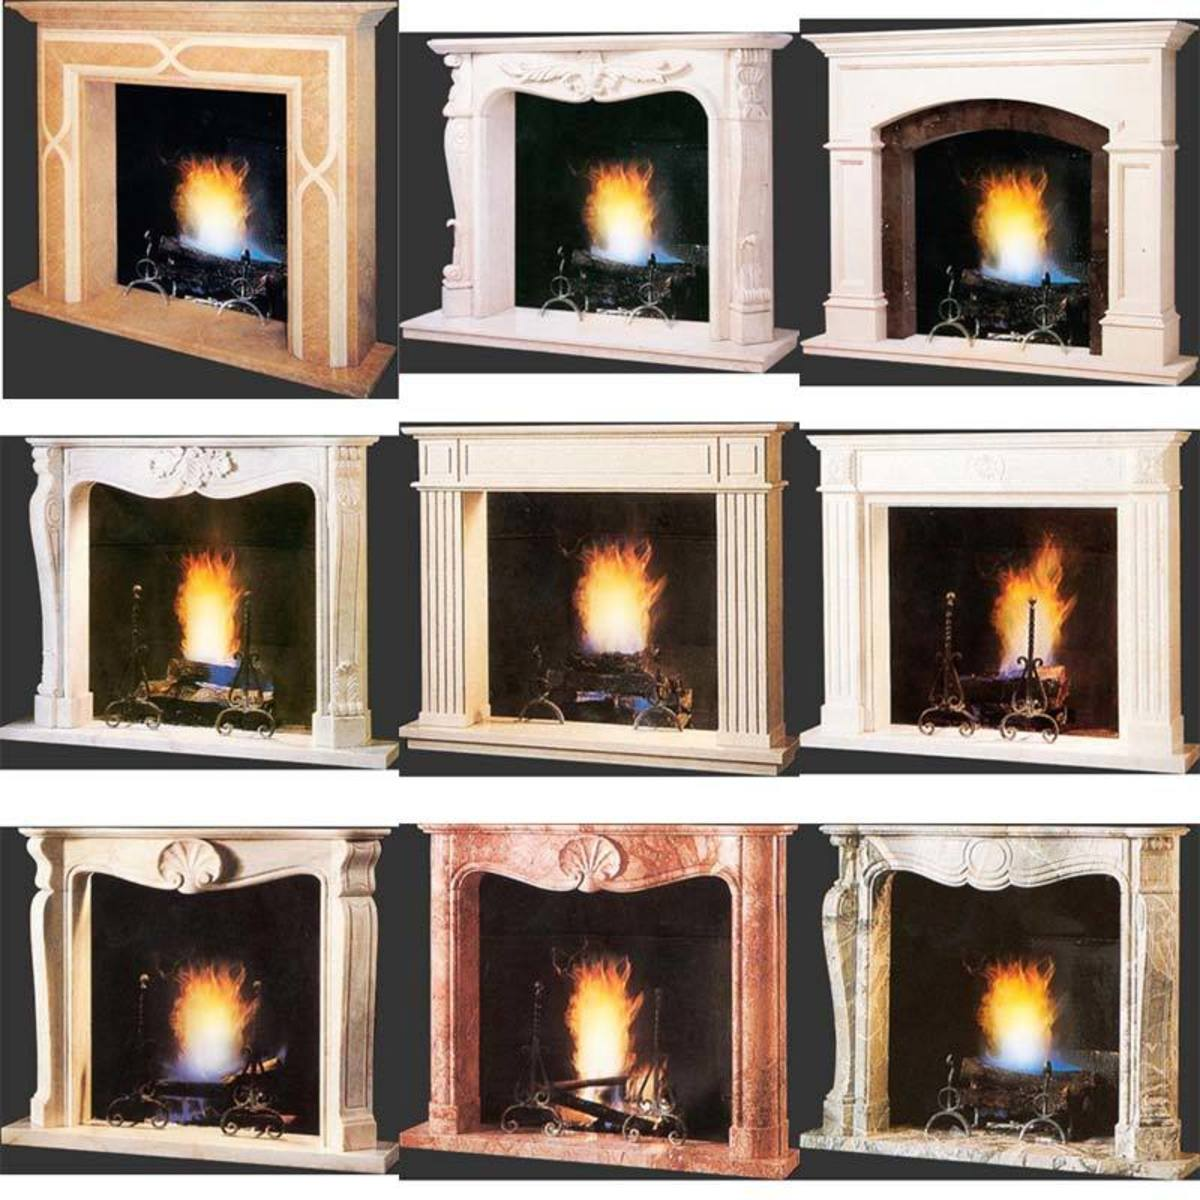 12 Different Fireplace Home Decor Options